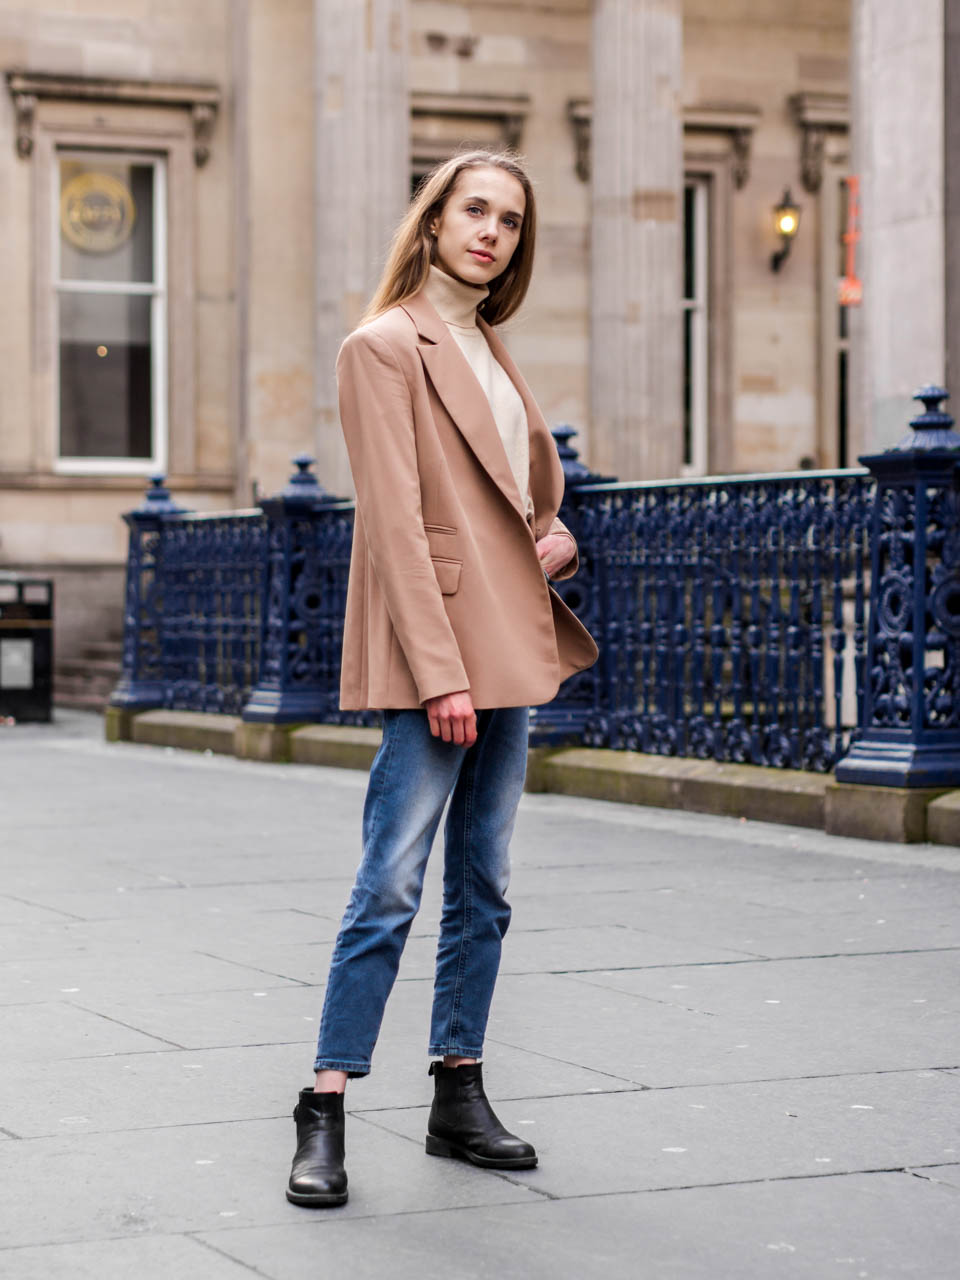 Autumn fashion: blazer+ turtleneck jumper - Syysmuoti: bleiseri ja pooloneule